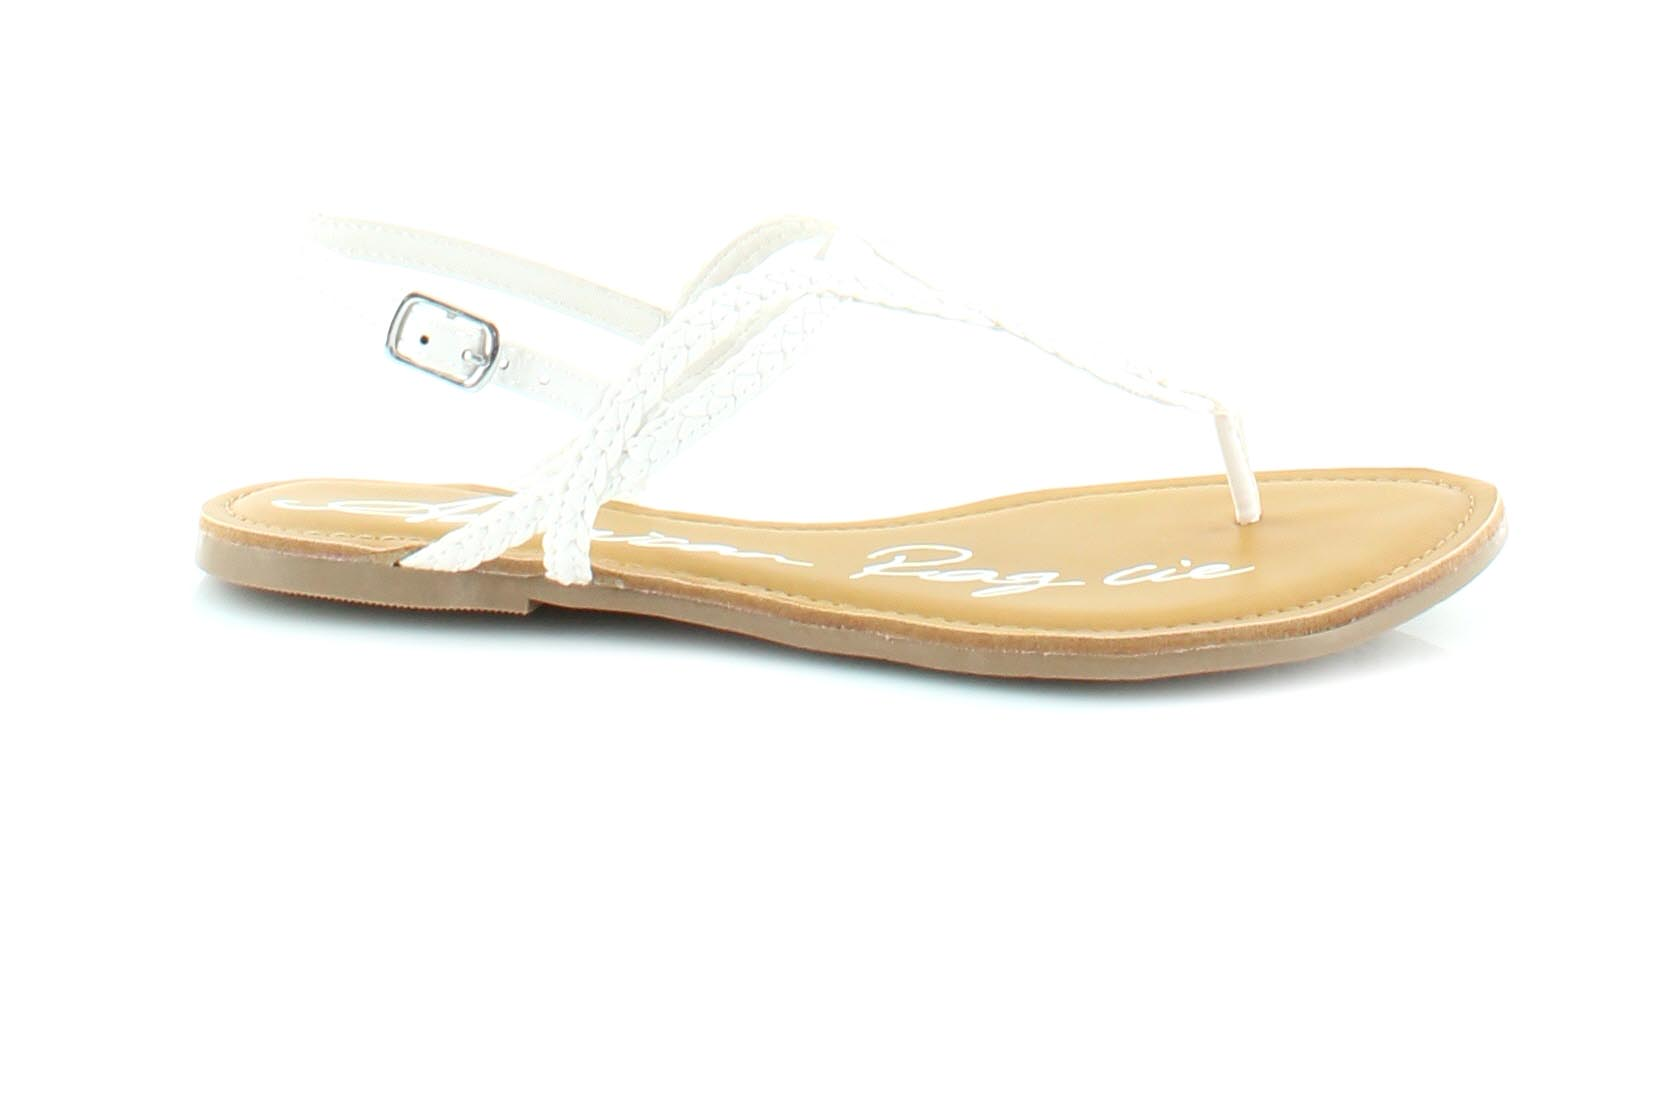 American Rag New Akeira White Womens Shoes Size 11 M Sandals MSRP ... 44827712f